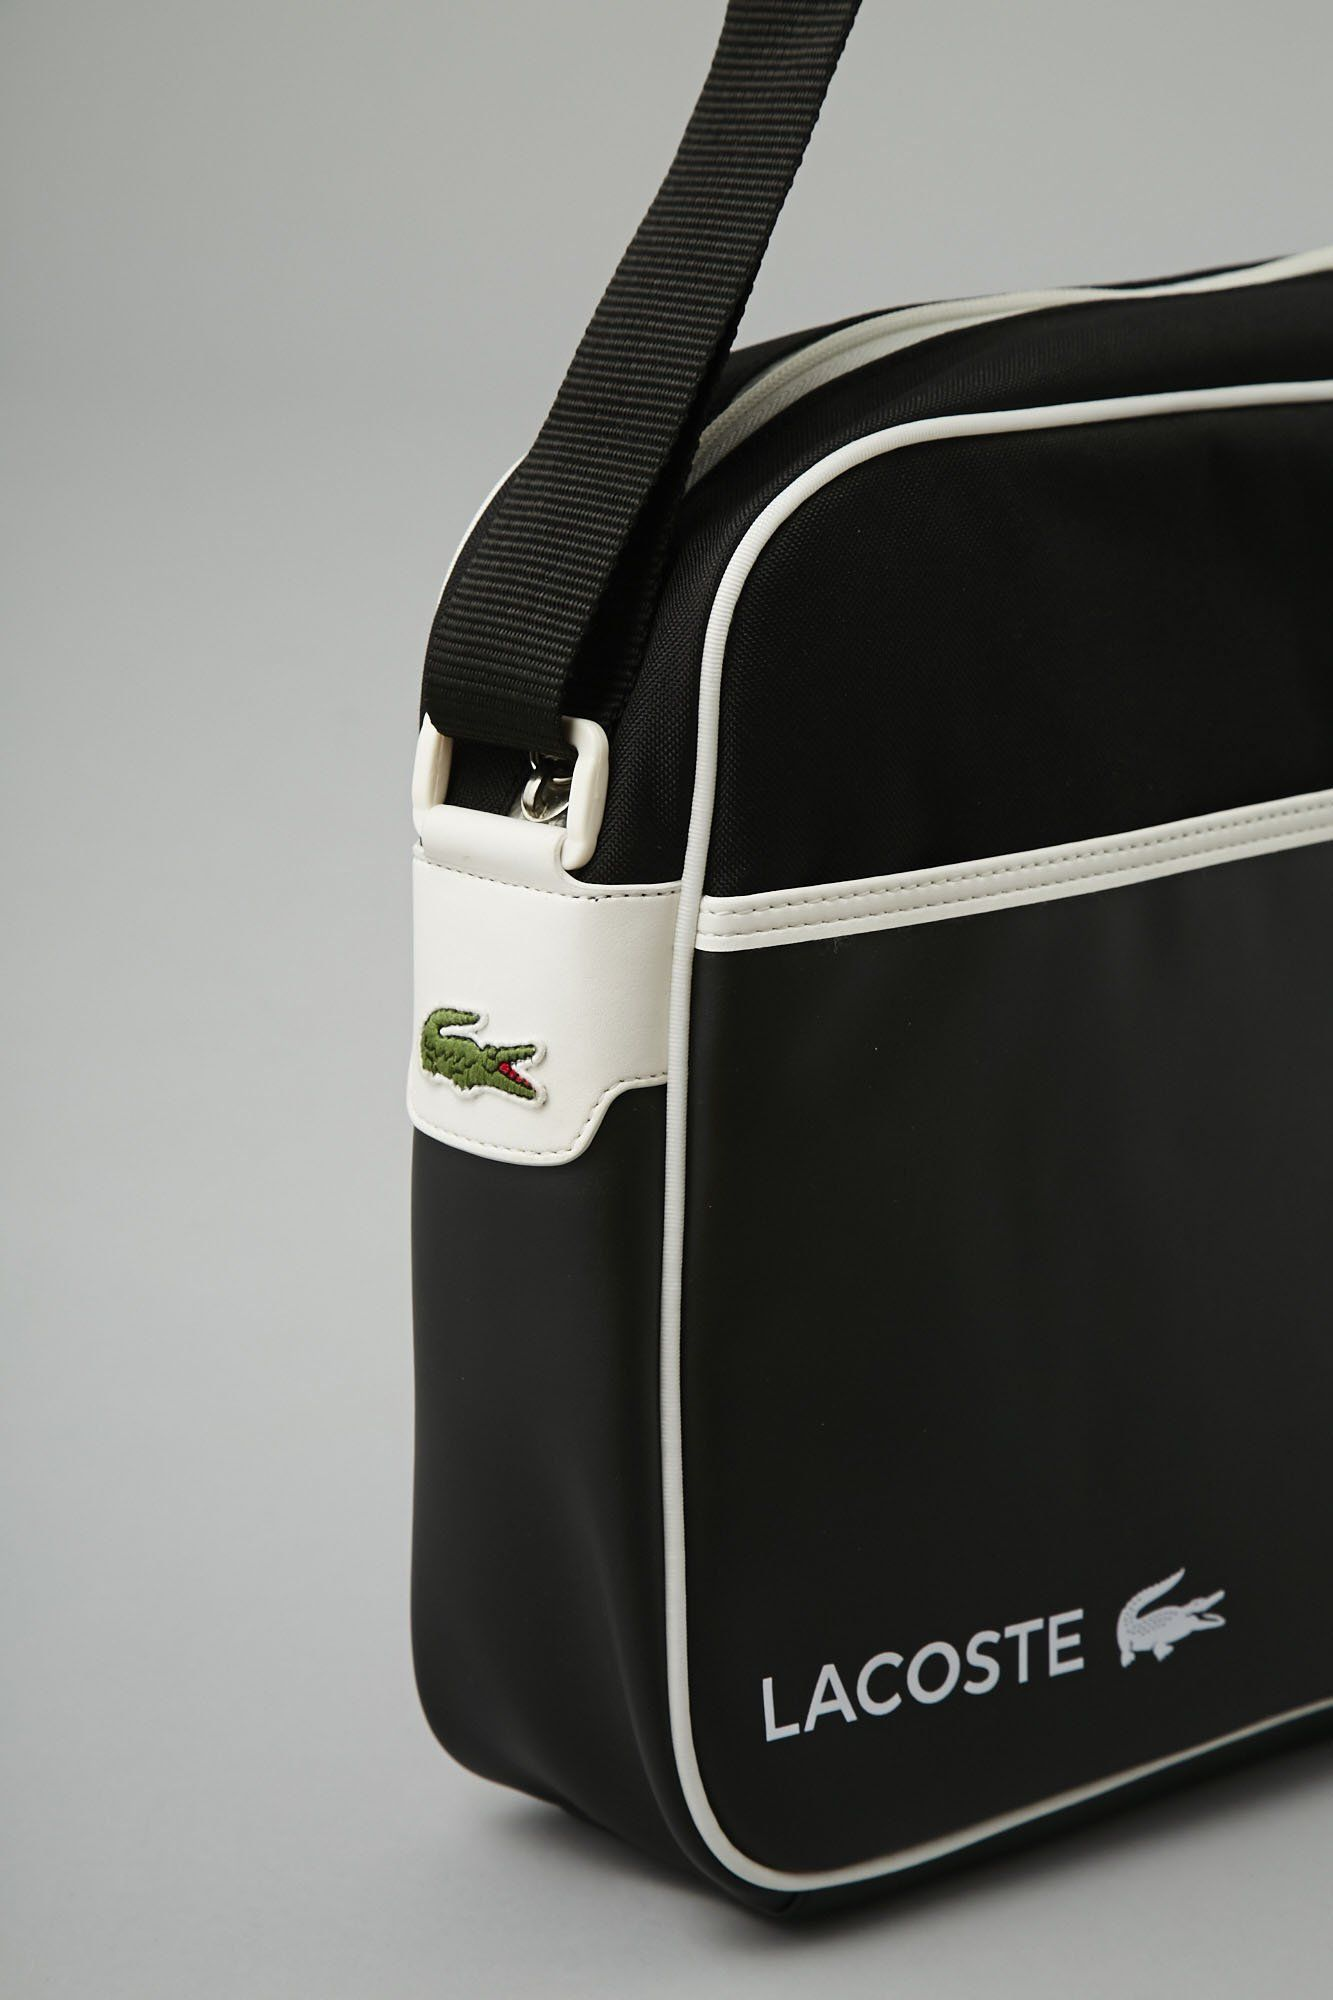 de178aef58 Lacoste Airline Bag : Bags & Wallets #Accomplished | Progressing ...